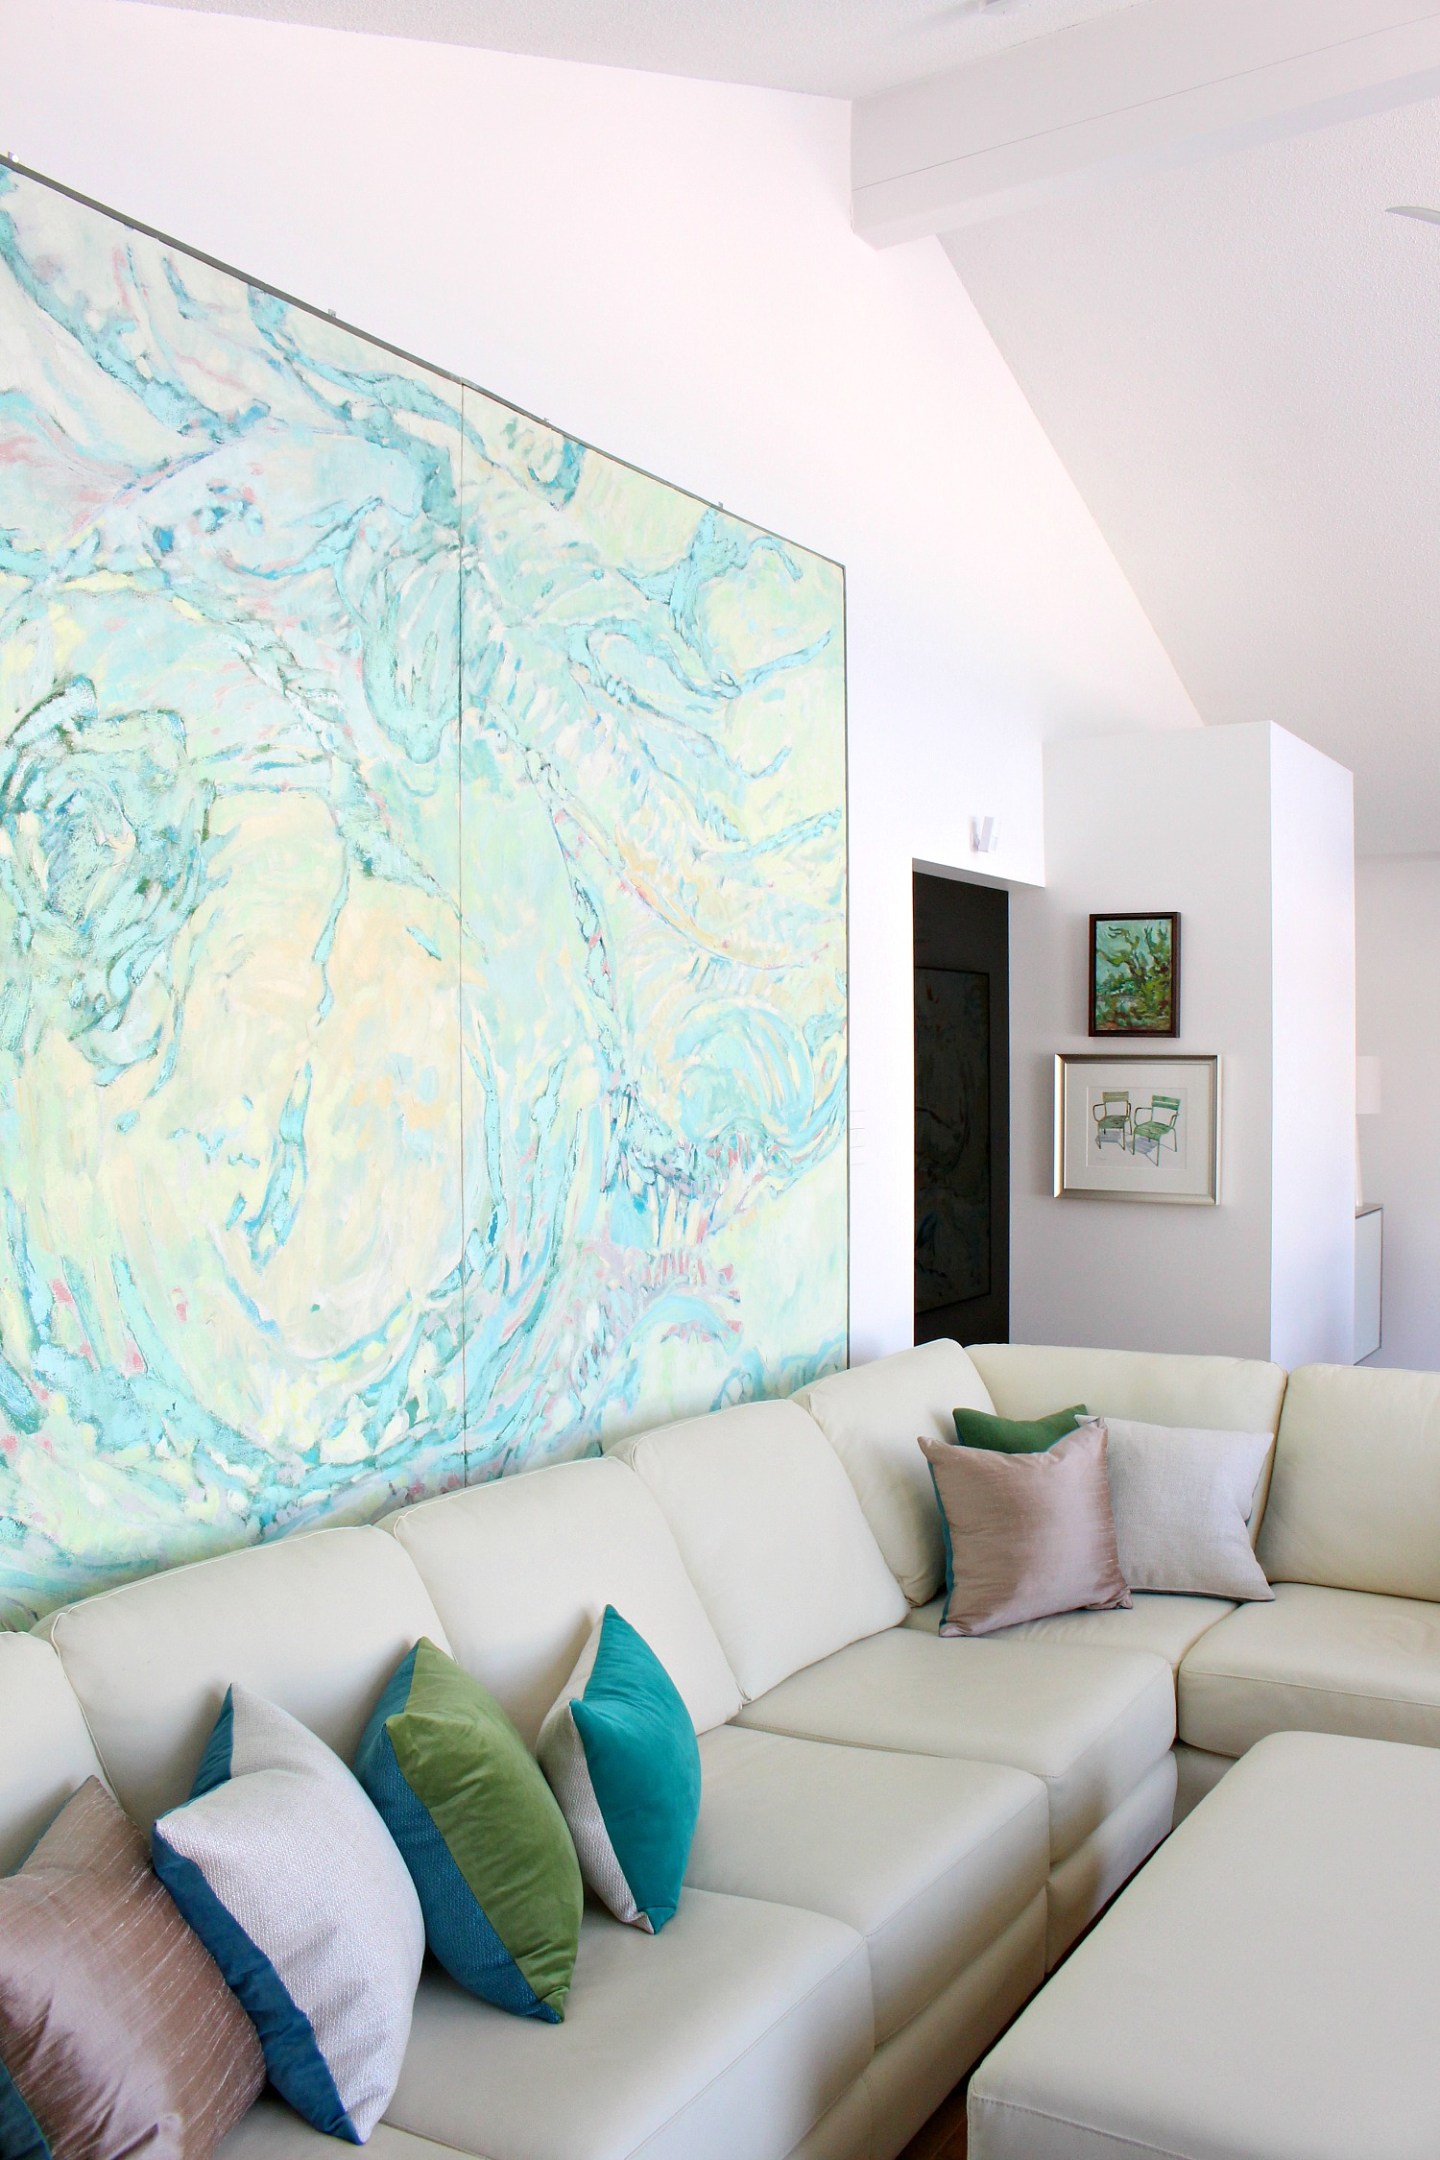 How to Hang Large Art + How to Put a Sofa in Front of Art Without Causing Damage